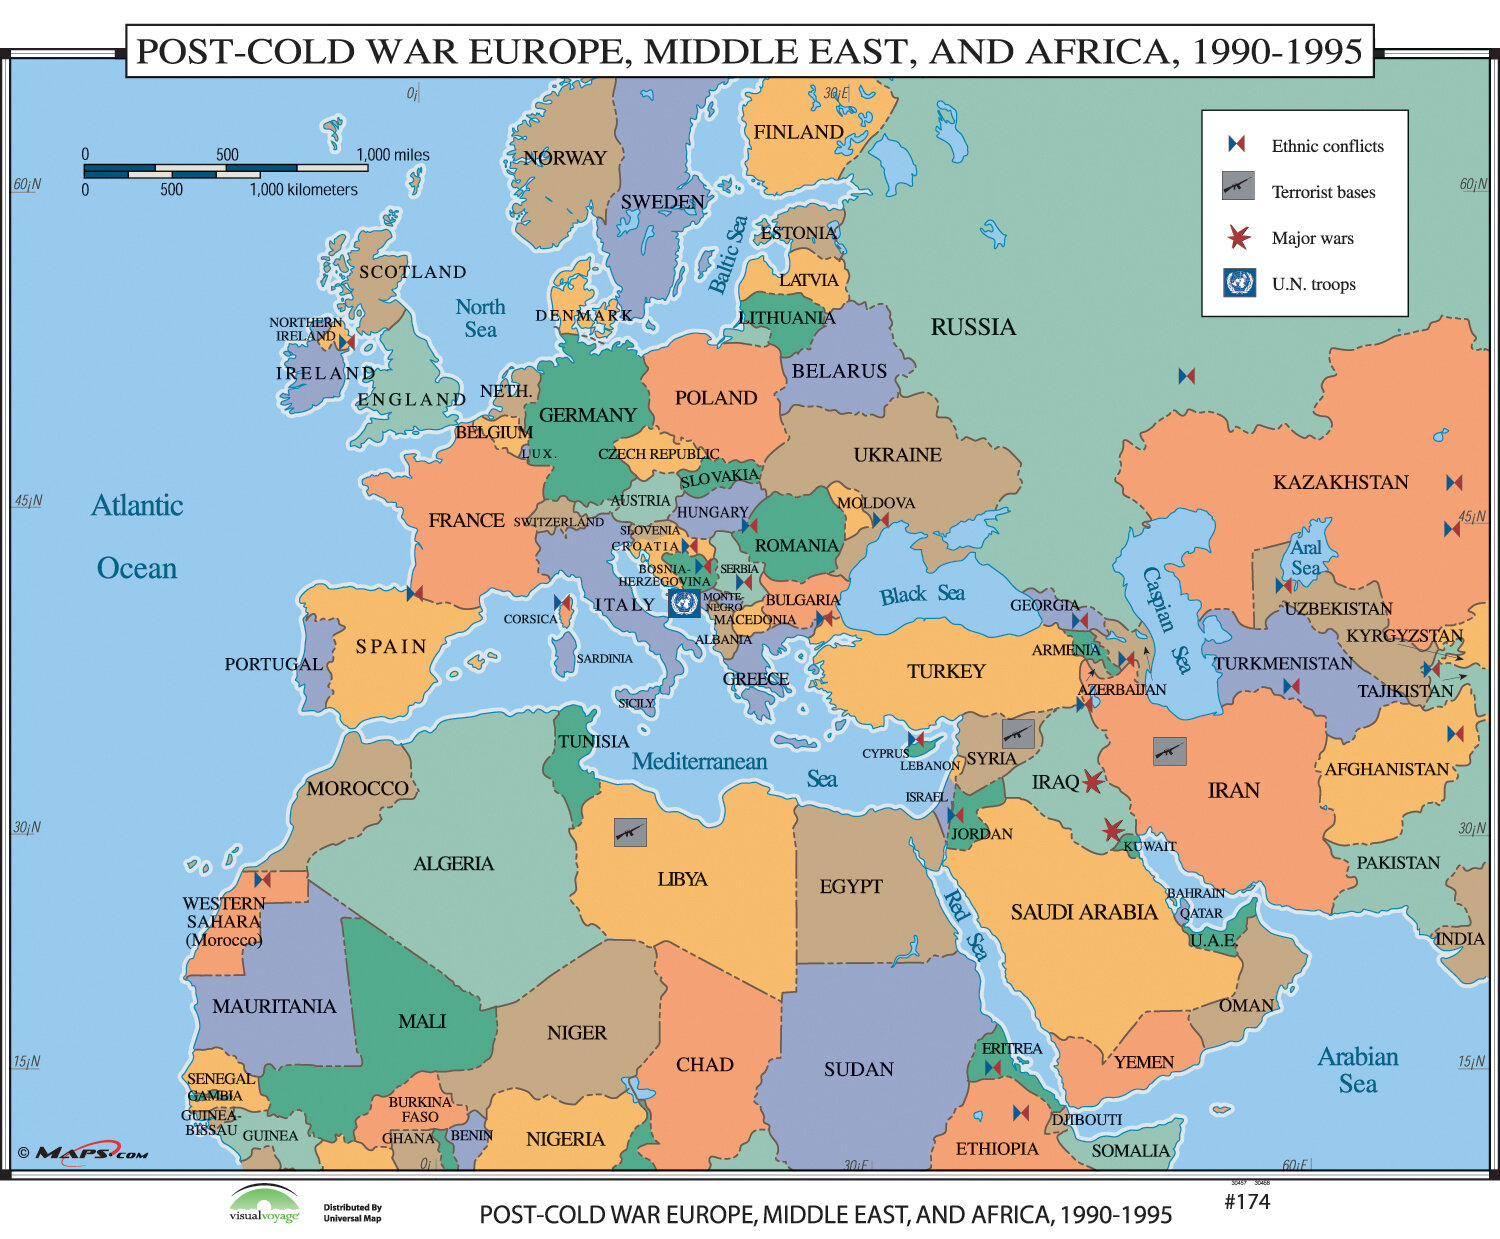 World History Wall Maps - Post Cold War Europe, Middle East & Africa